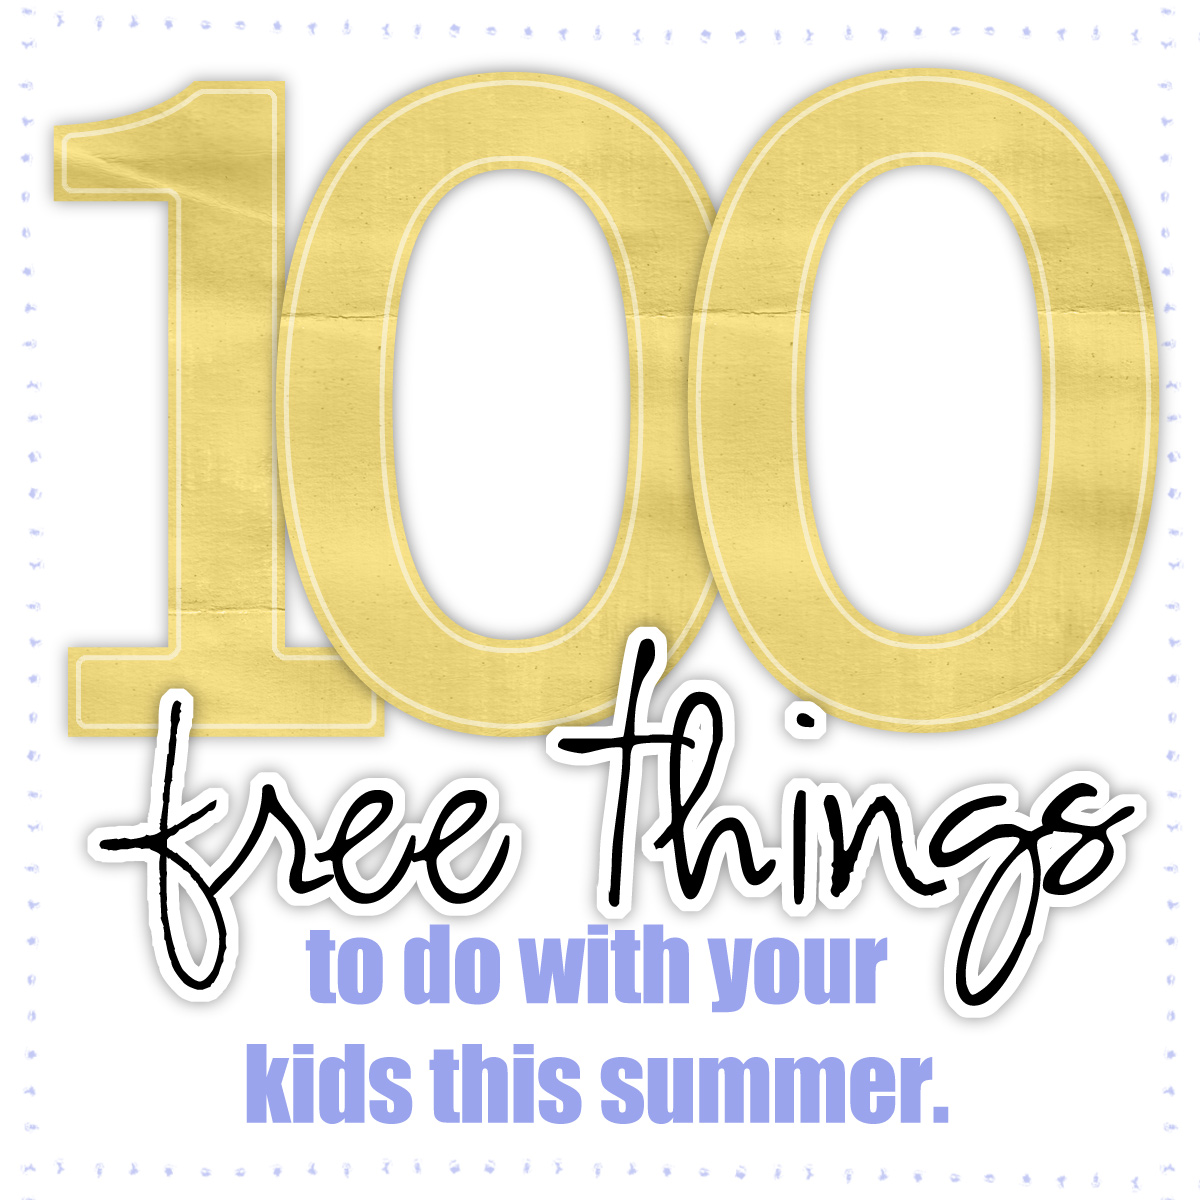 Parent Talk Matters Blog: 100 FREE Things To Do With Your